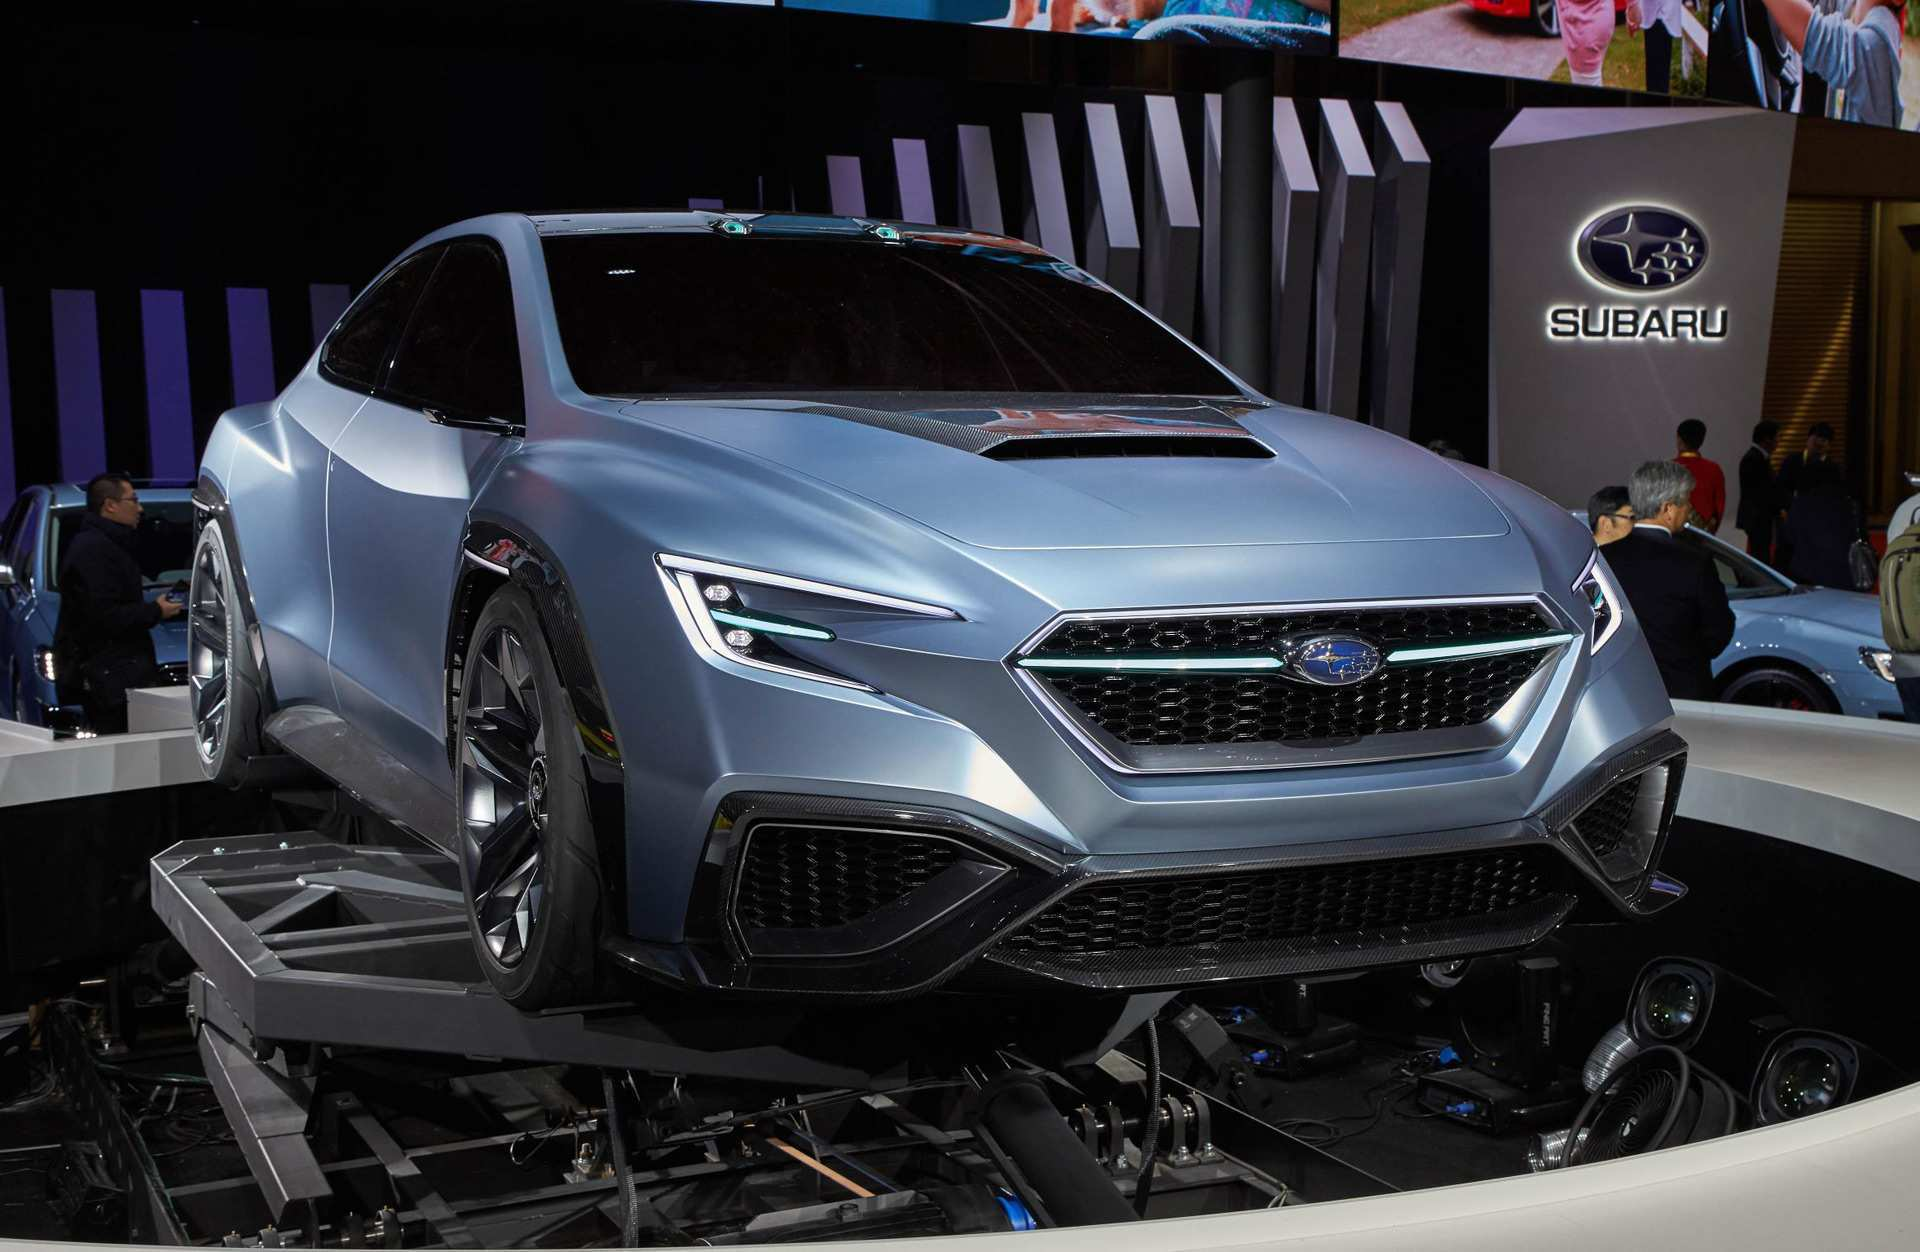 53 Concept of Subaru New New Concepts 2020 Release for Subaru New New Concepts 2020